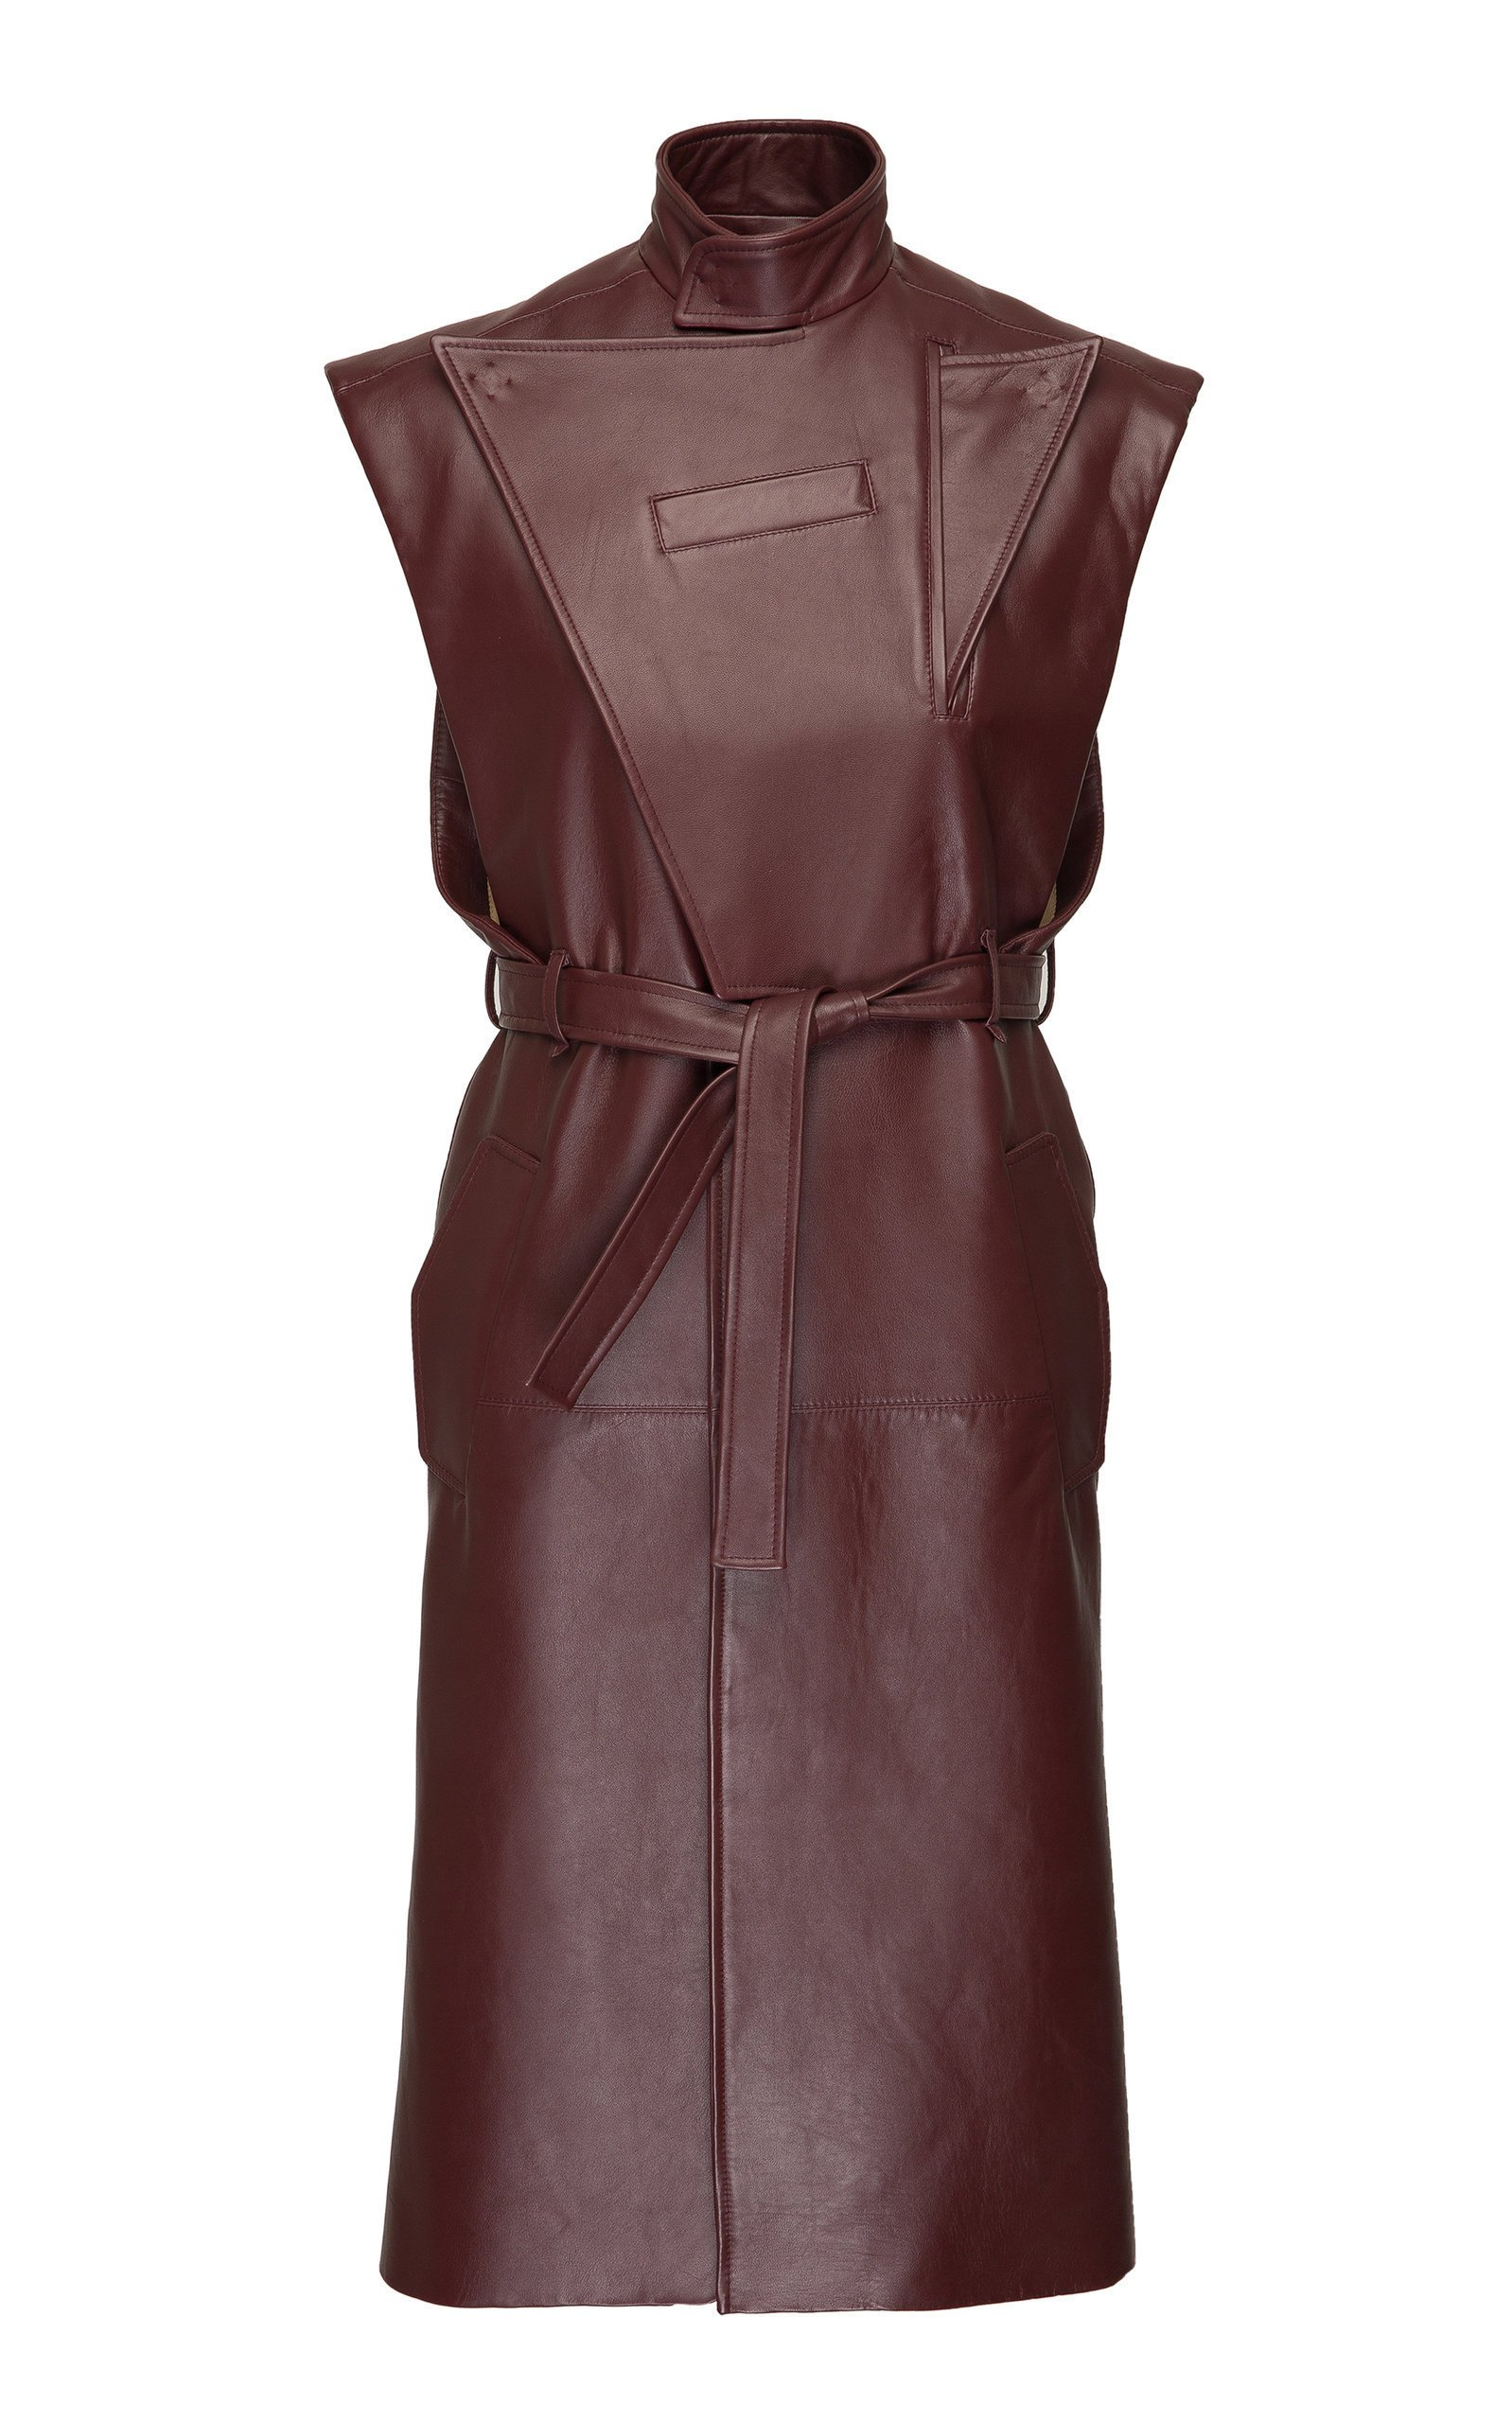 SITUATIONIST Sleeveless Leather Coat